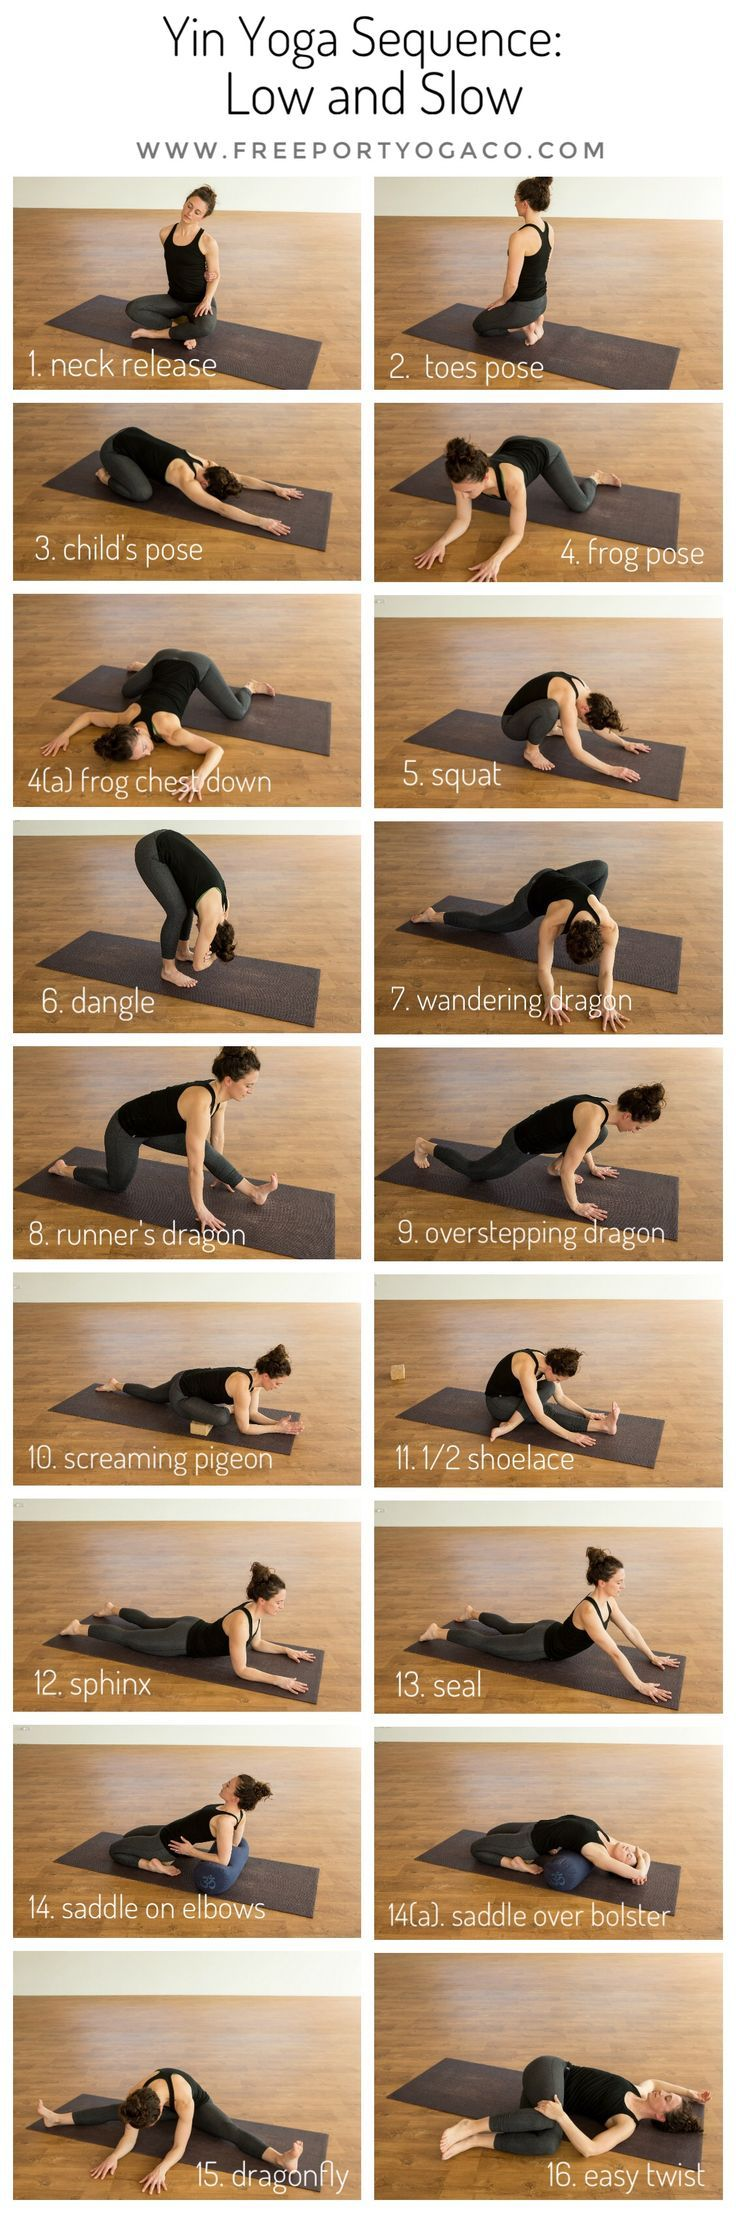 "This month's Yin Yoga Sequence is aptly titled ""Low and Slow"", inviting an earthy, grounded energy, and physically, targeting the lower body, including the feet and ankles. As always, I take into consideration my runners and athletes, who are currently coming off race season, or getting ready for the last big races, and this sequence is perfect for either phase of training."